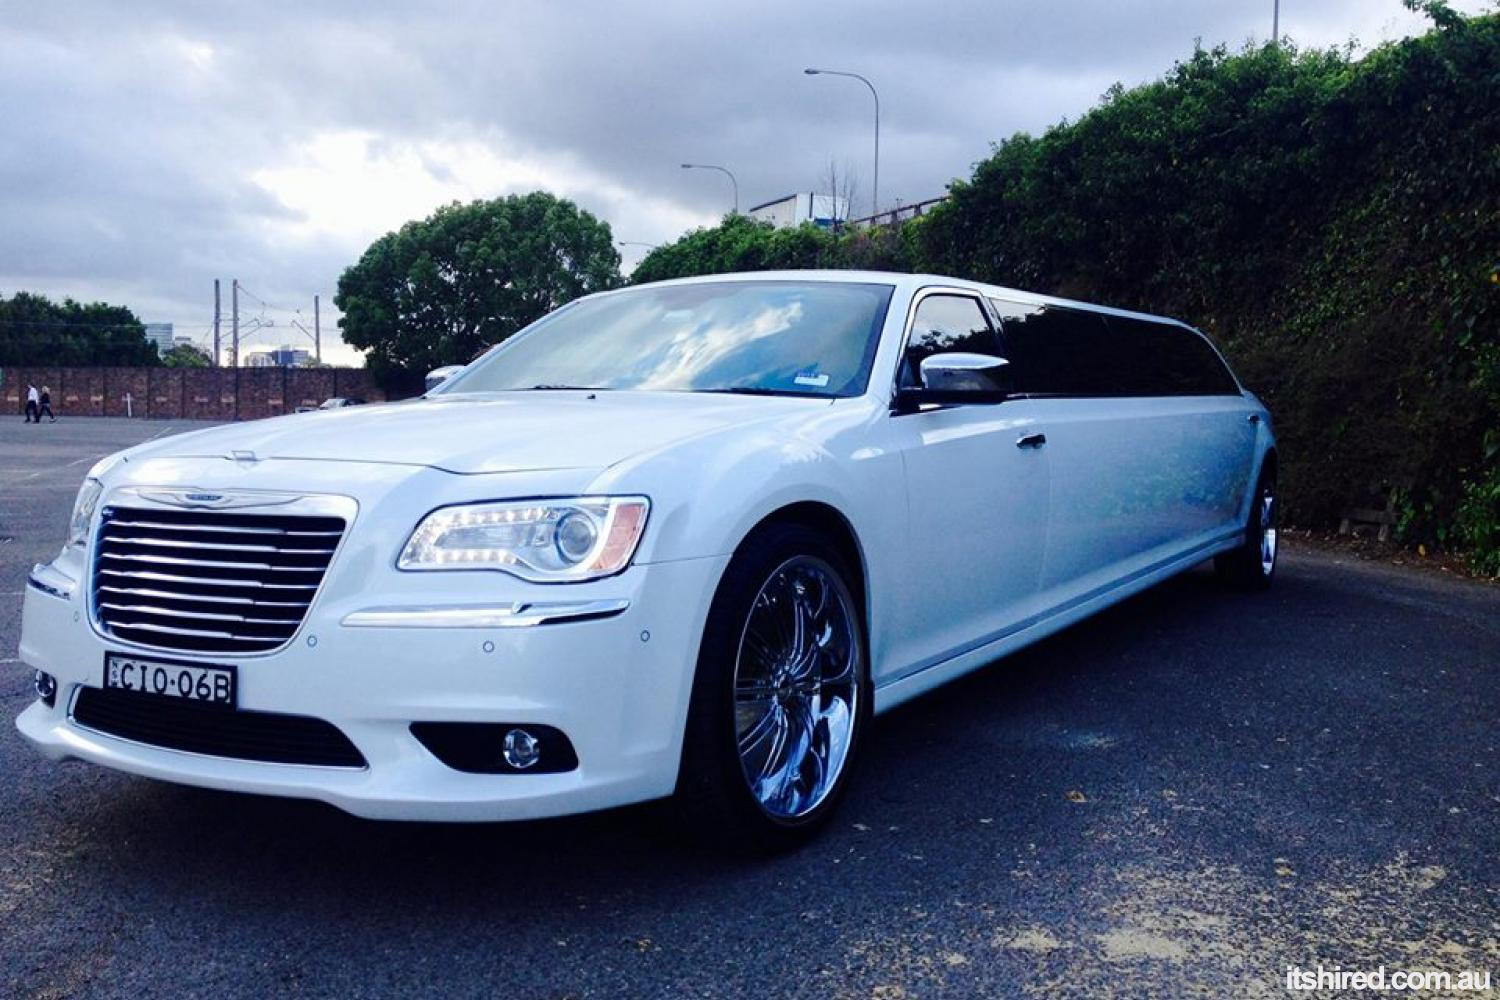 Chrysler 300c Wedding Car Hire Sydney Alvira Limousine Hire